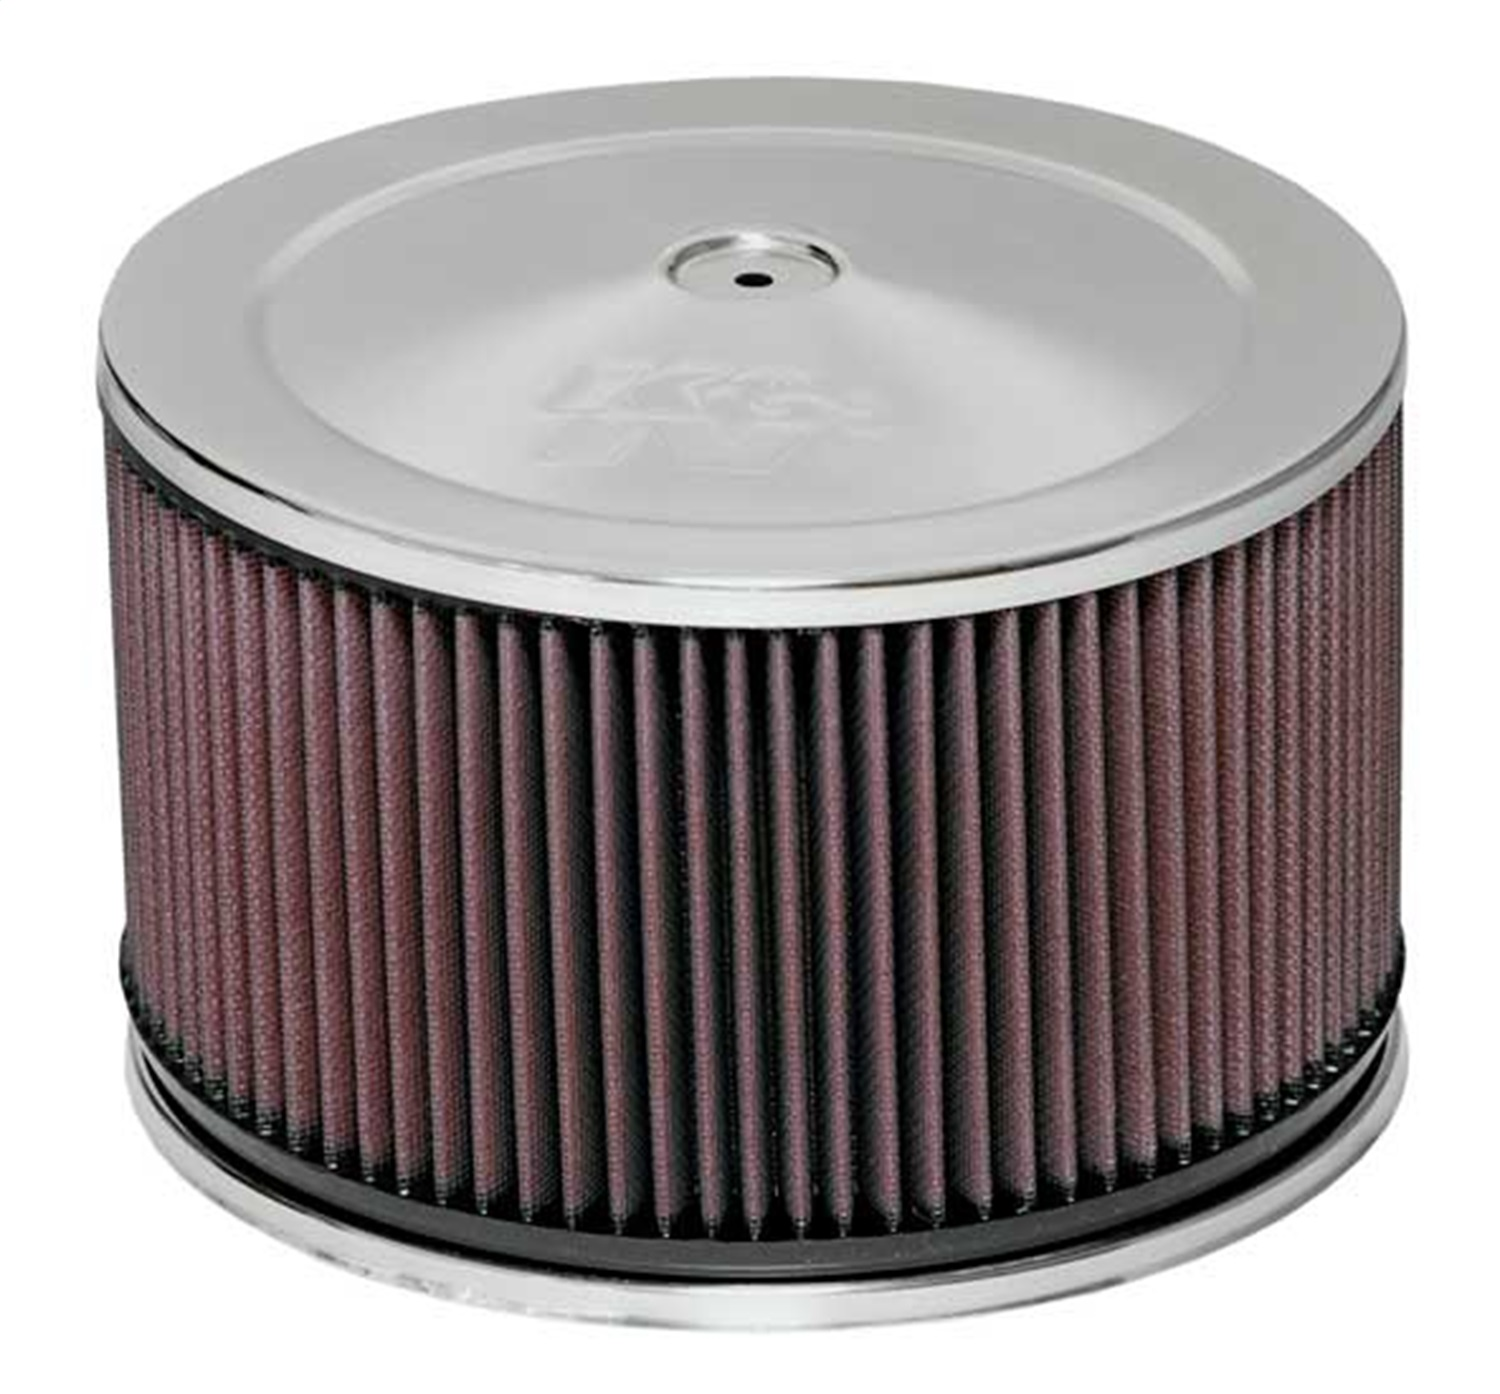 K&N Filters 60-1366 Custom Air Cleaner Assembly 60-1366